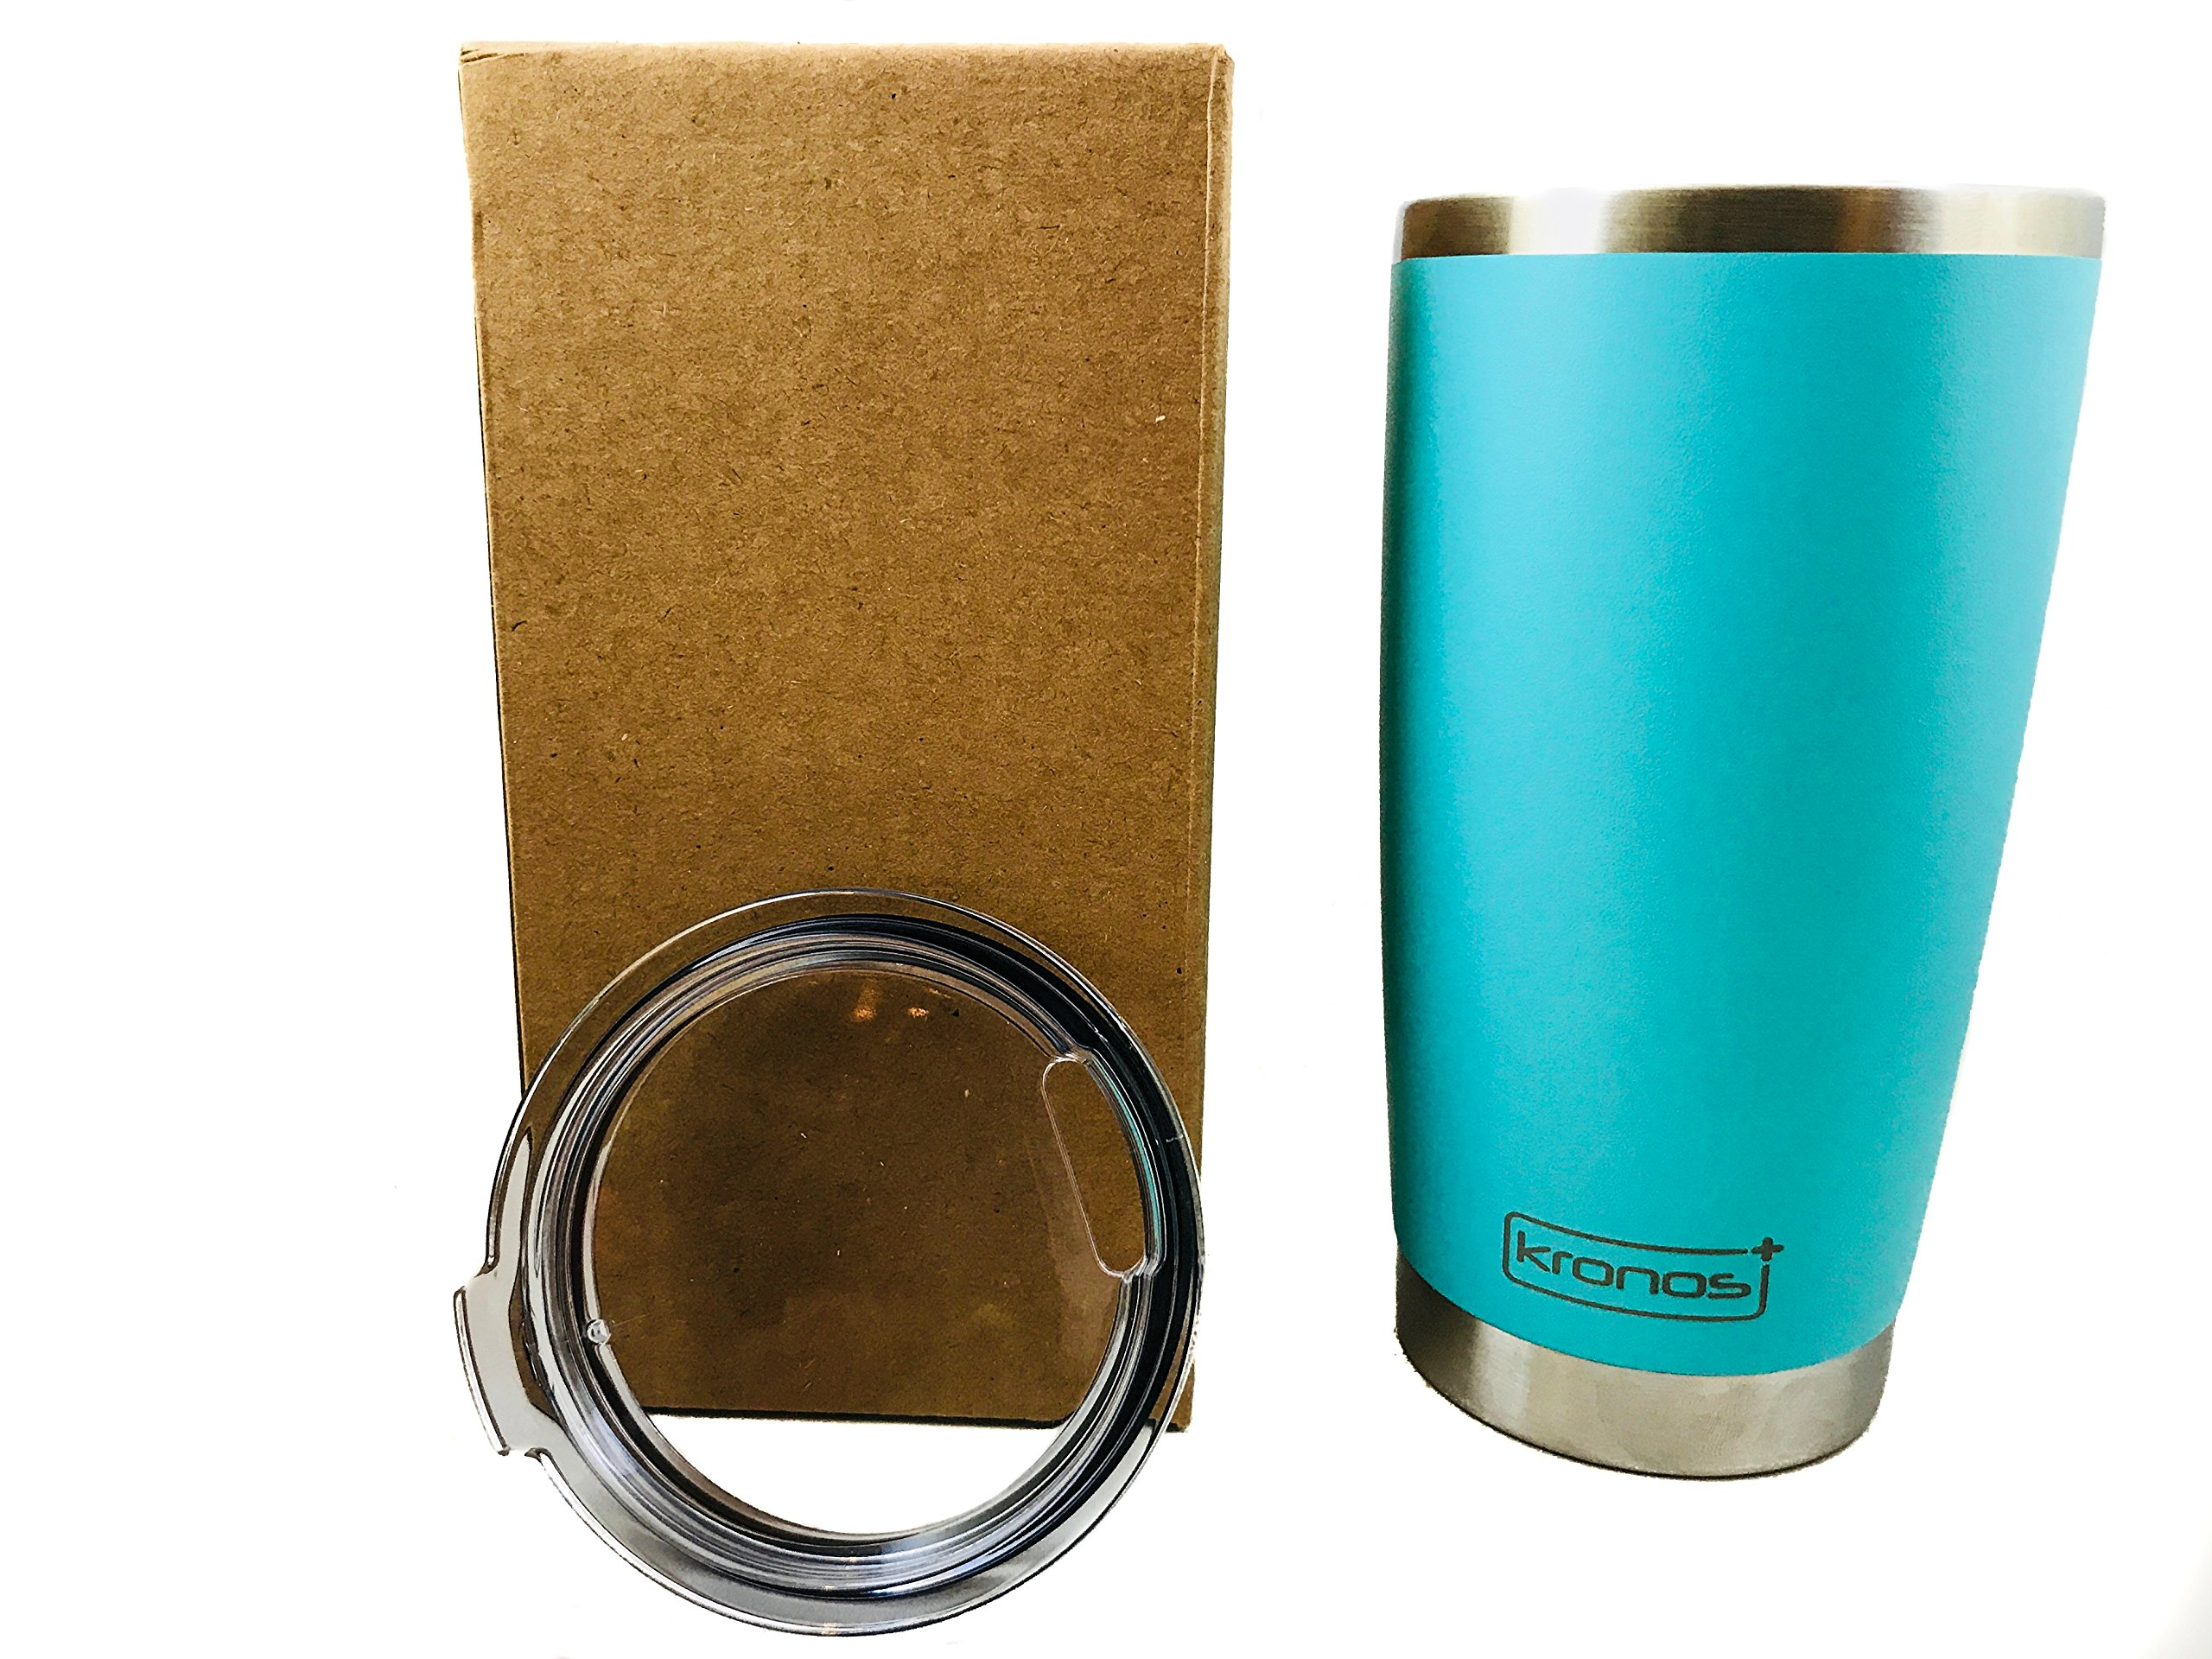 ( SEA FOAM ) Dishwasher Safe 20 oz Vacuum Insulated Thermos with High Quality Matte Finish - Coffee Mug Tumbler by Kronos + (Image #5)